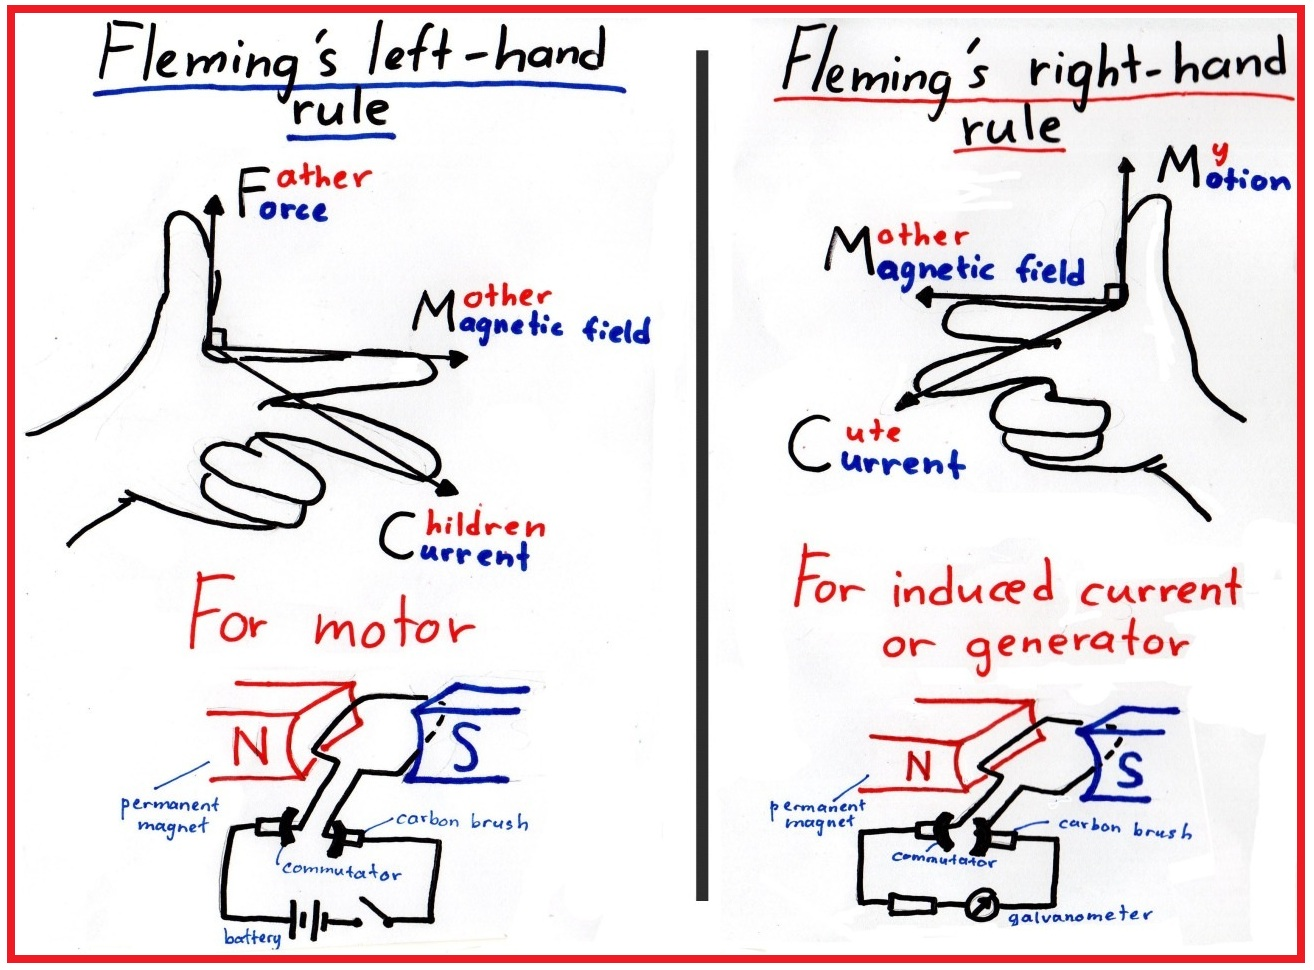 difference between fleming s left and right hand rule electrical rh elecengworld1 blogspot com Automotive Wiring Diagrams Wiring Diagram Symbols